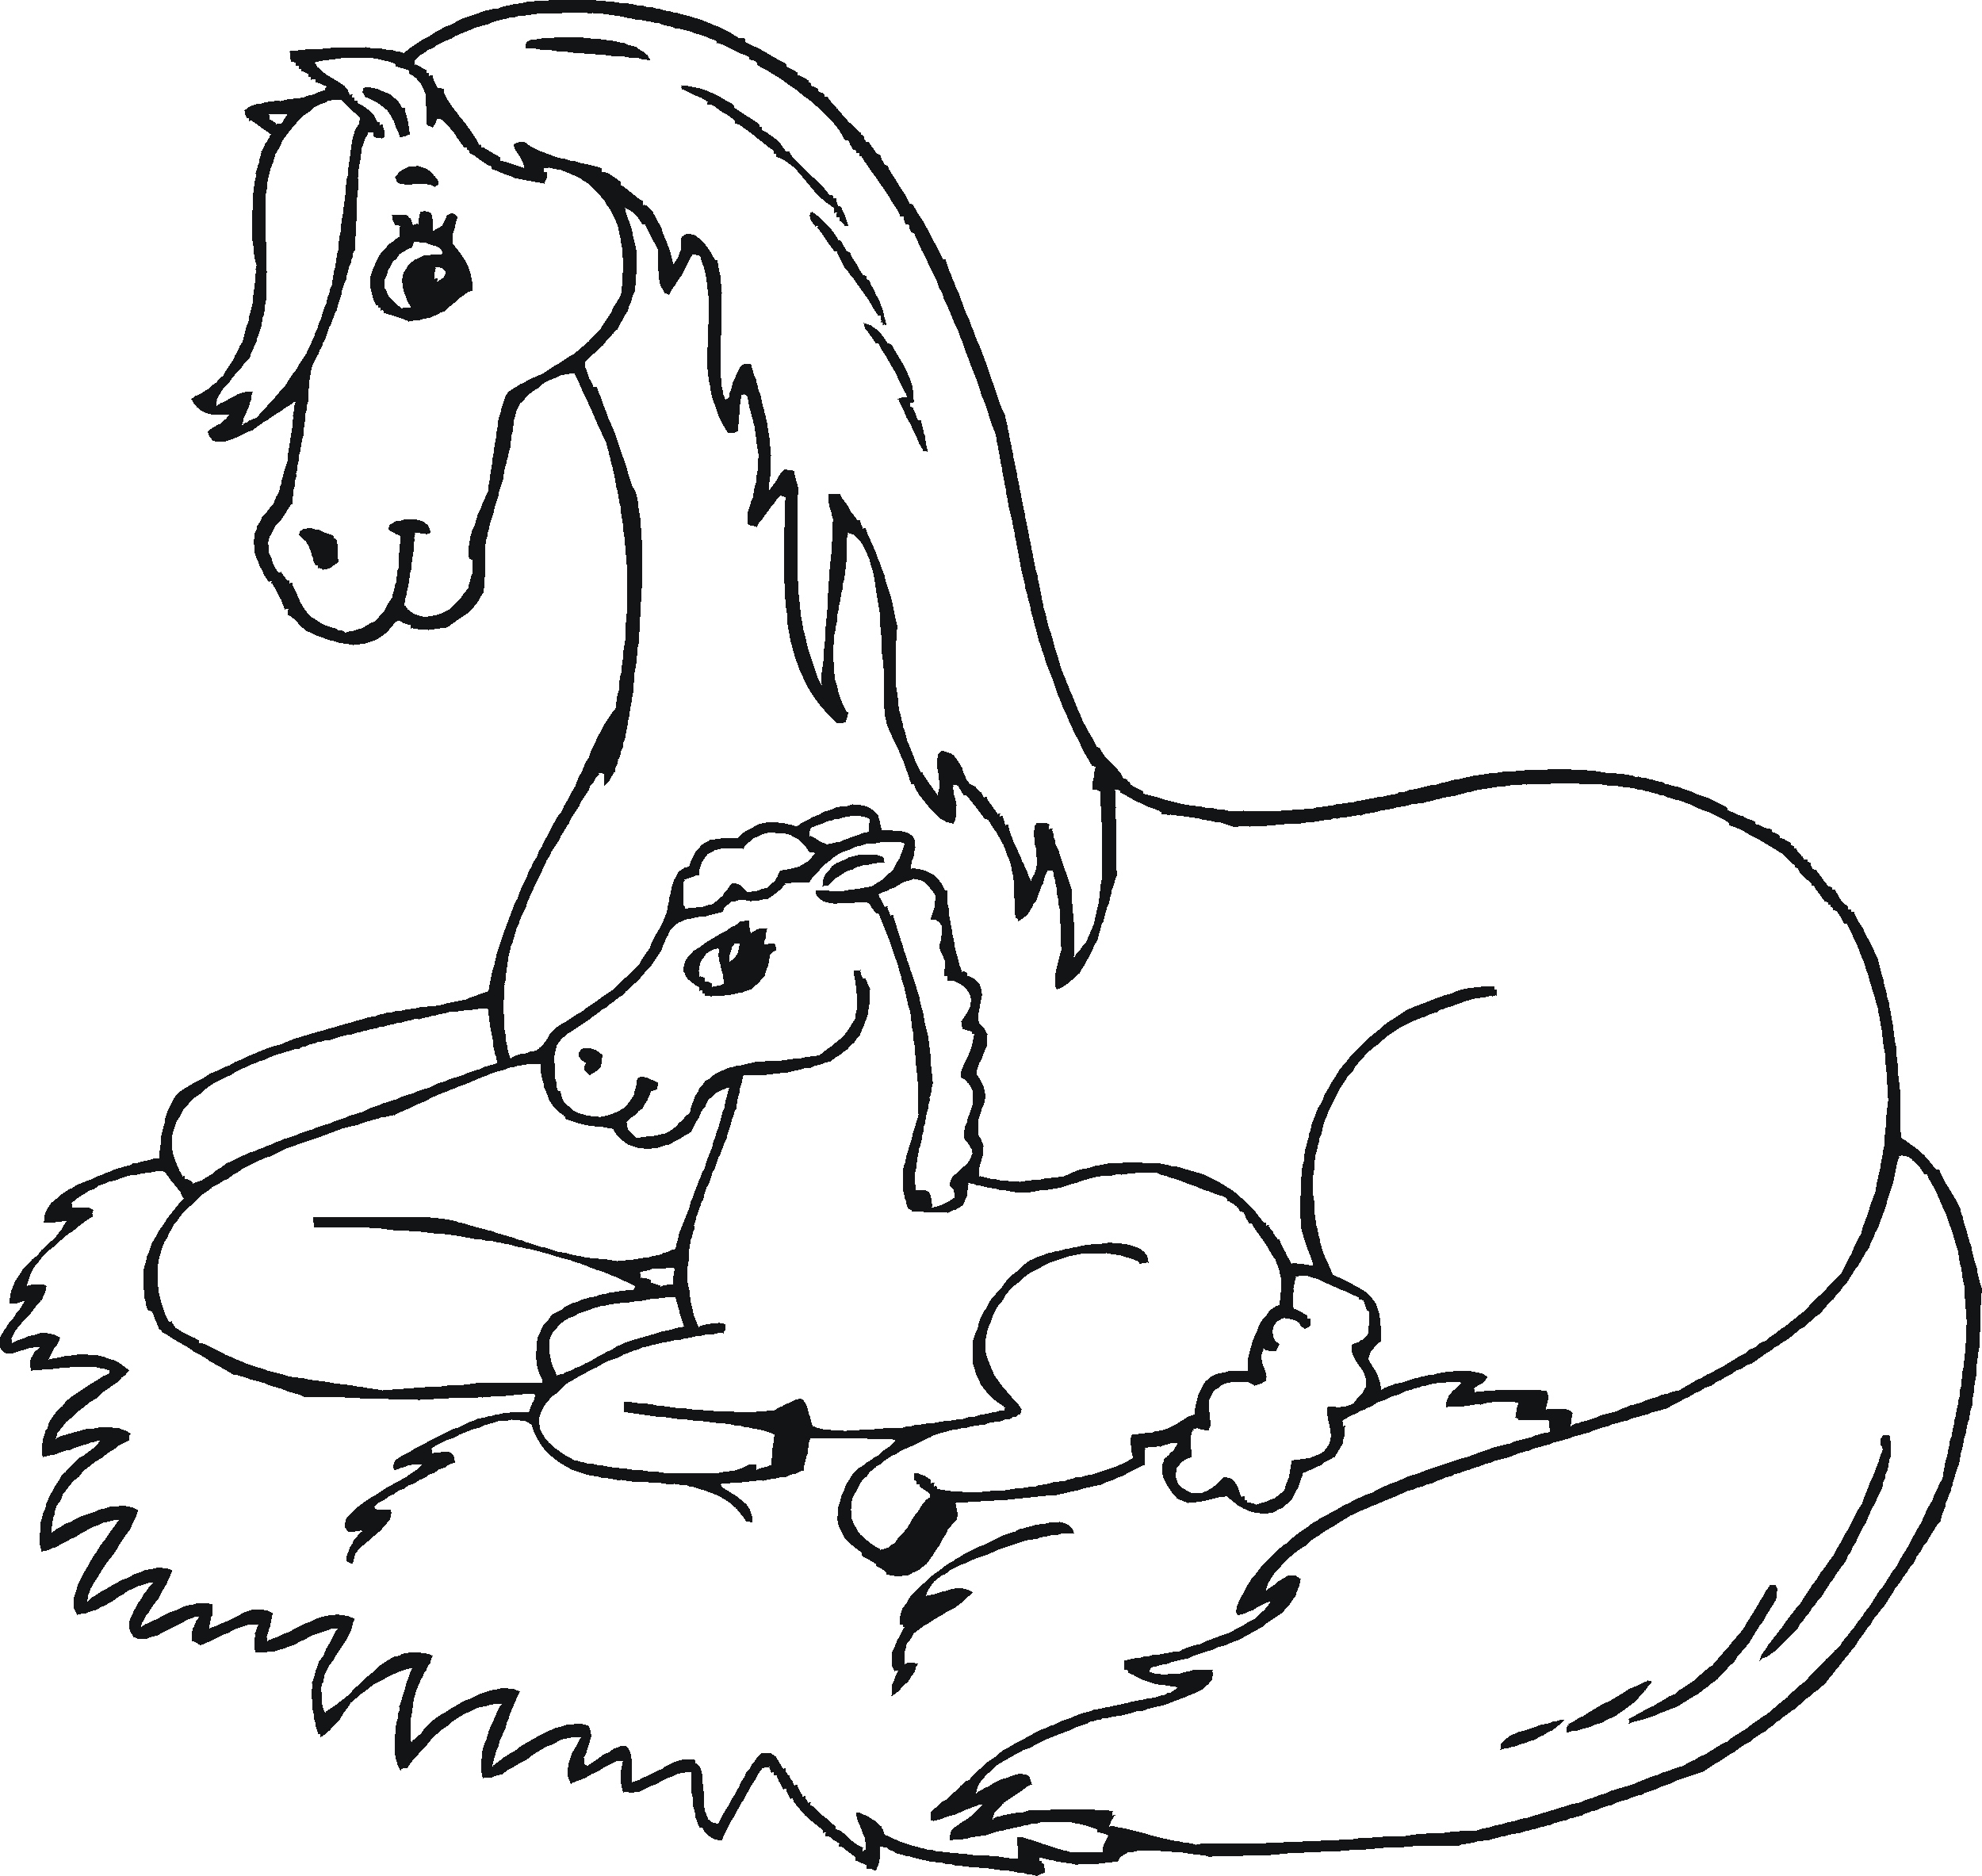 horses to color free horse coloring pages for adults kids cowgirl magazine to horses color